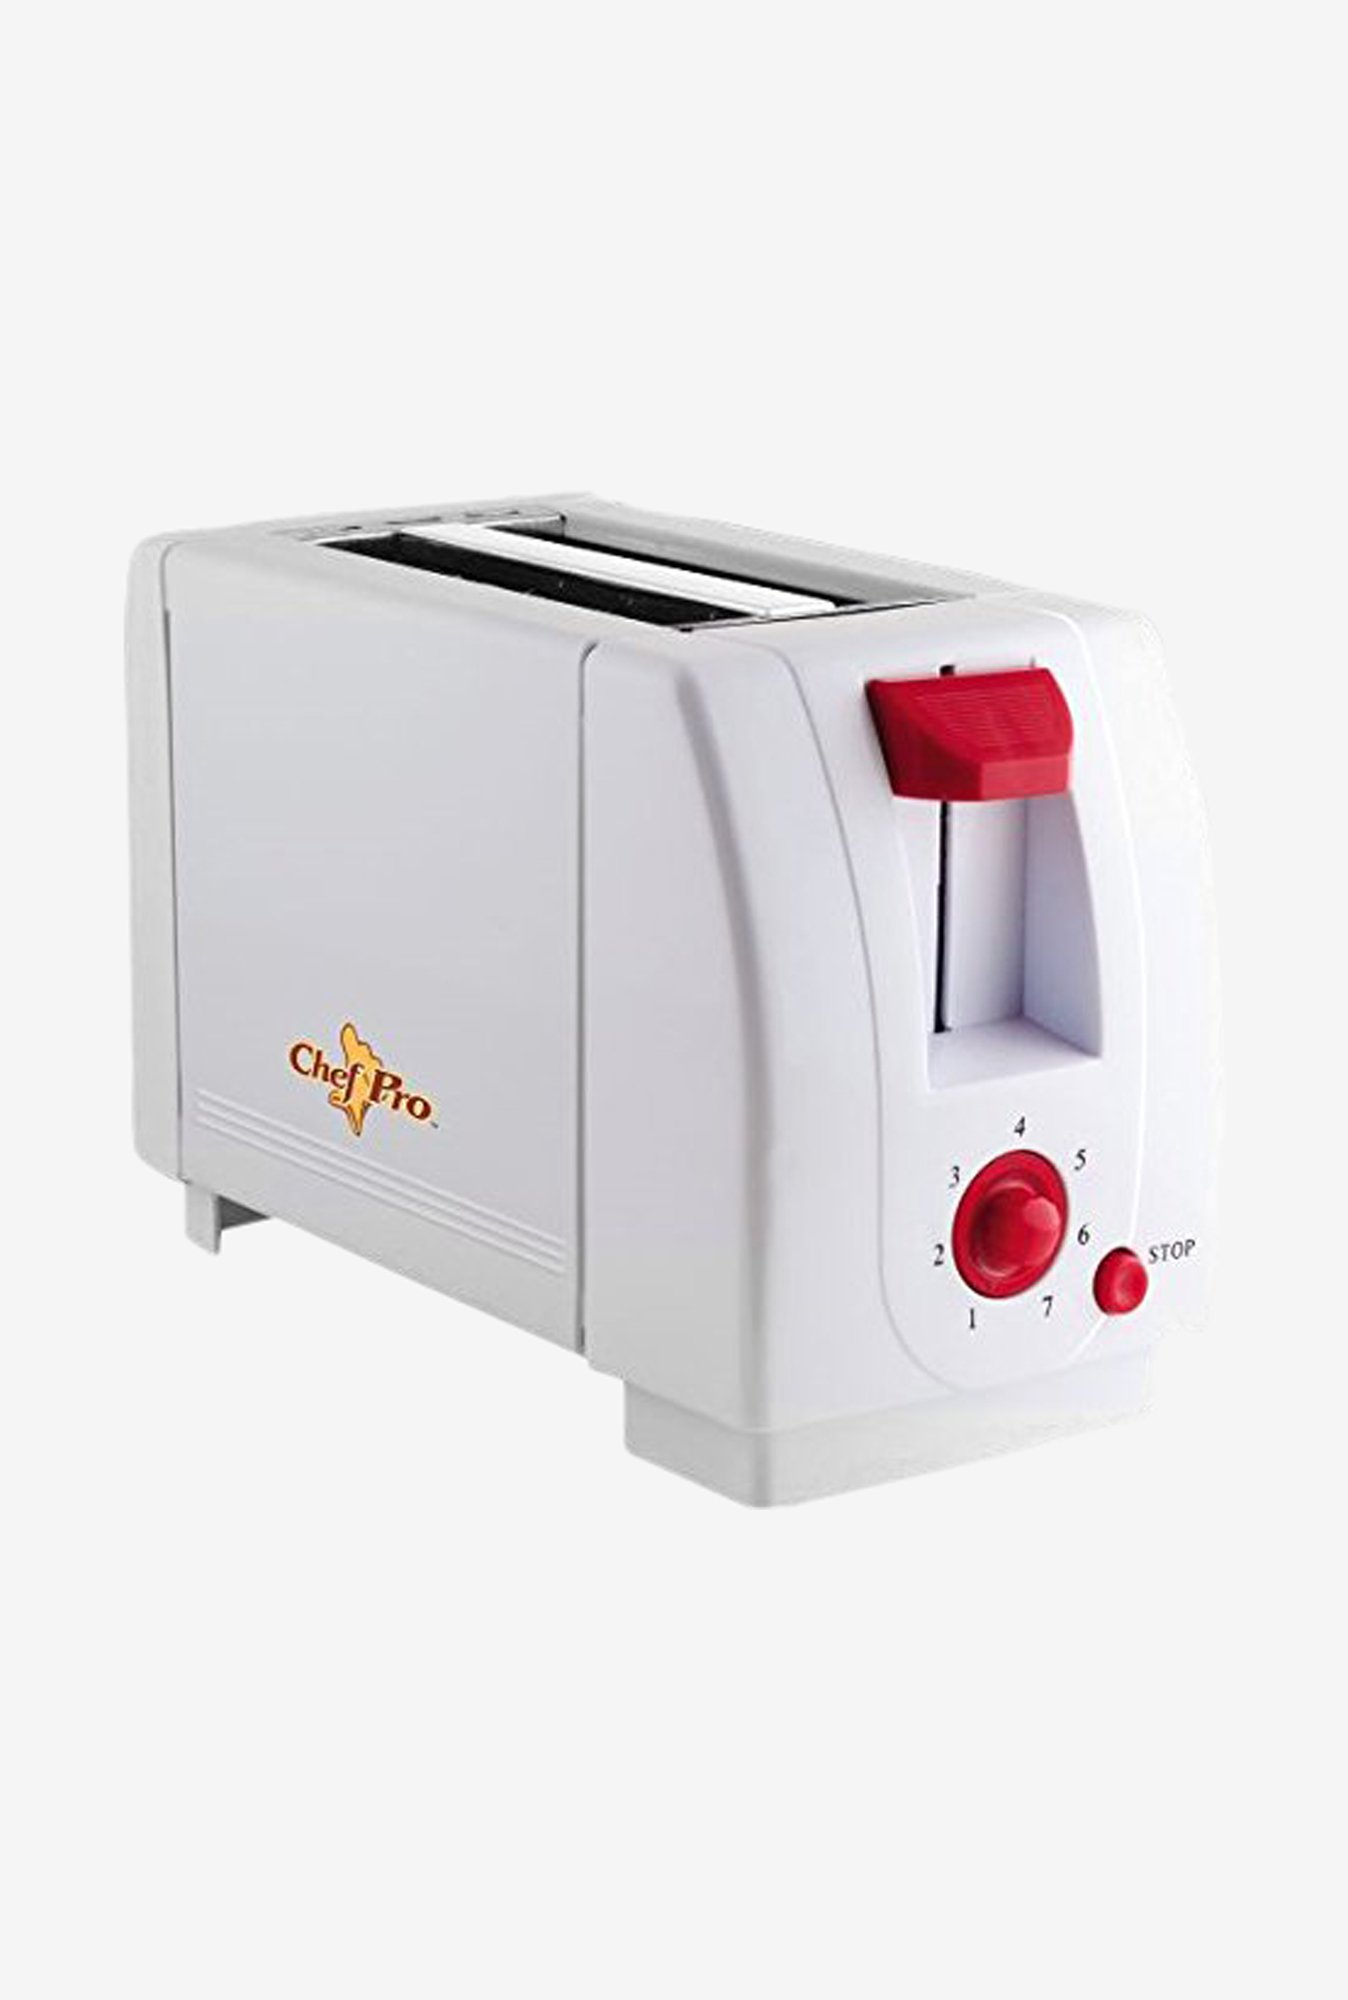 Chef Pro CPT540 2 Slice Pop-Up Toaster (White)